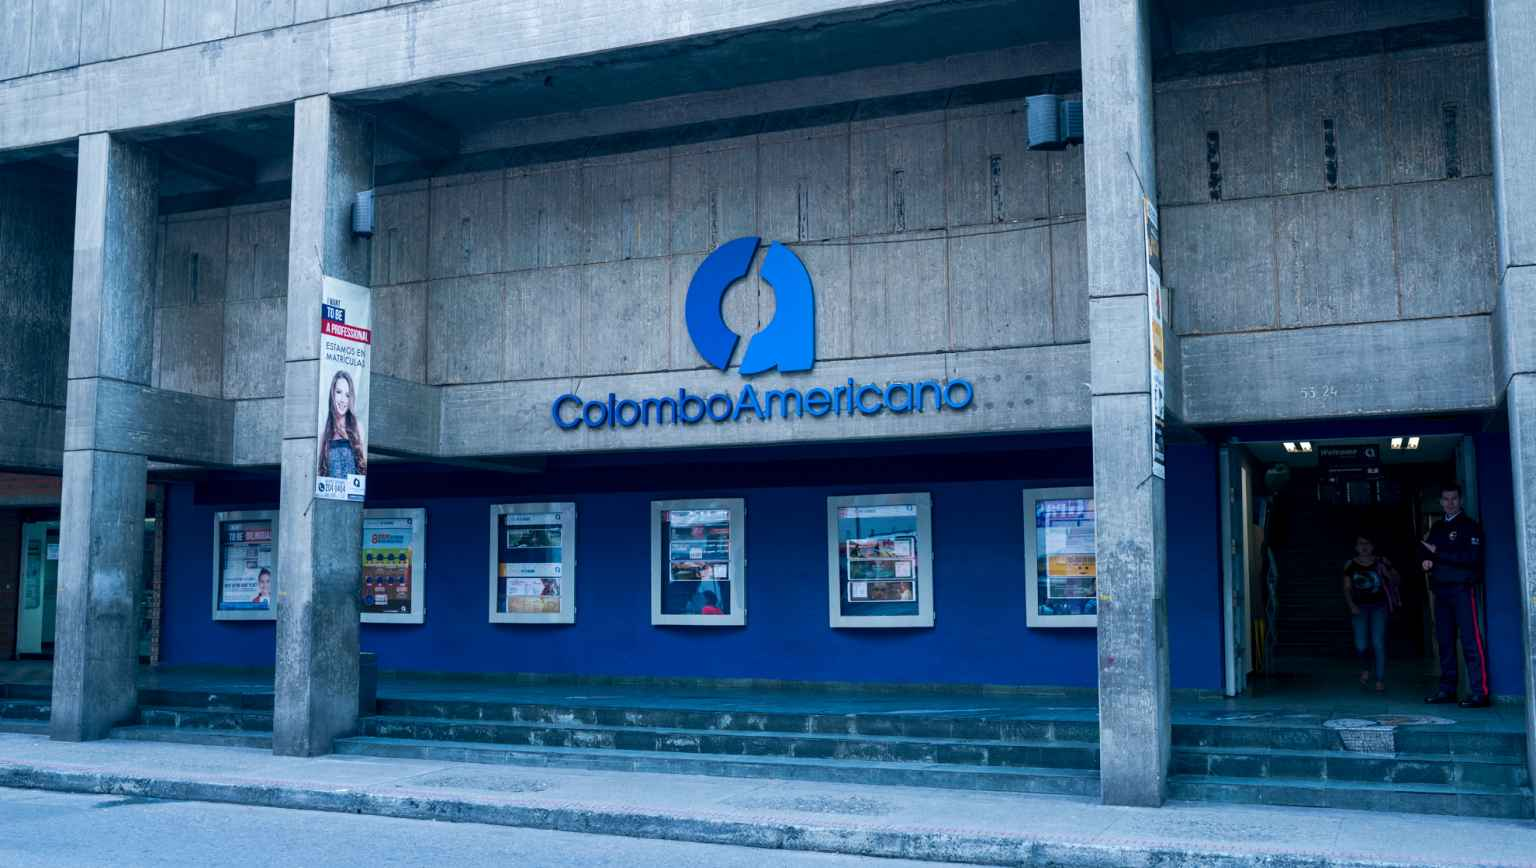 Colombo Americano Downtown Site